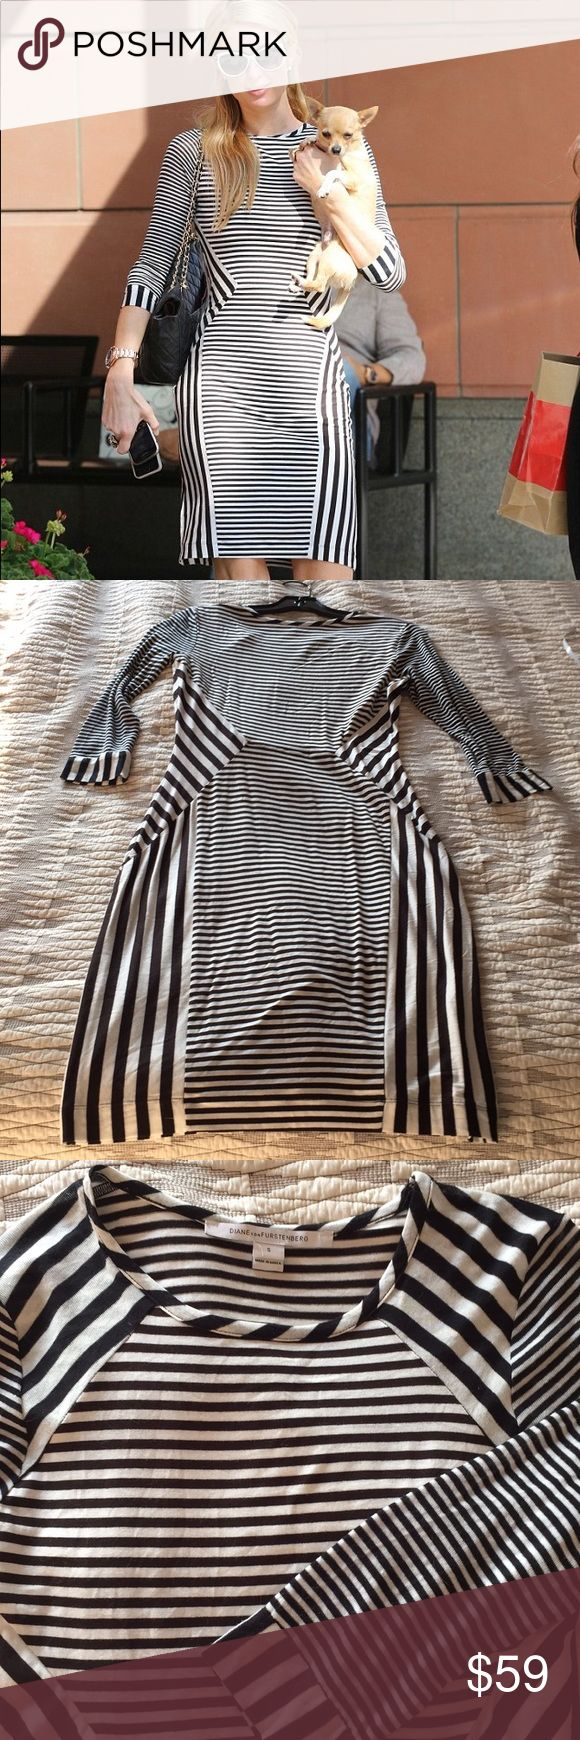 "NWOT DVF Haven Knit Dress As seen on Paris Hilton. DVF black & white geometric striped knit dress. Purchased at Gilt warehouse sale and never worn. Cotton blend. Small defect on right sleeve discovered when taking photos, easily repaired. Smoke free home. Measures 38"" from shoulder to hem. The Haven dress is soft and sexy. With black and white stripes artfully arranged to flatter and contour the body. Great stretch. Unlined. Falls to above the knee. Fit is true to size. Check out DVF website…"